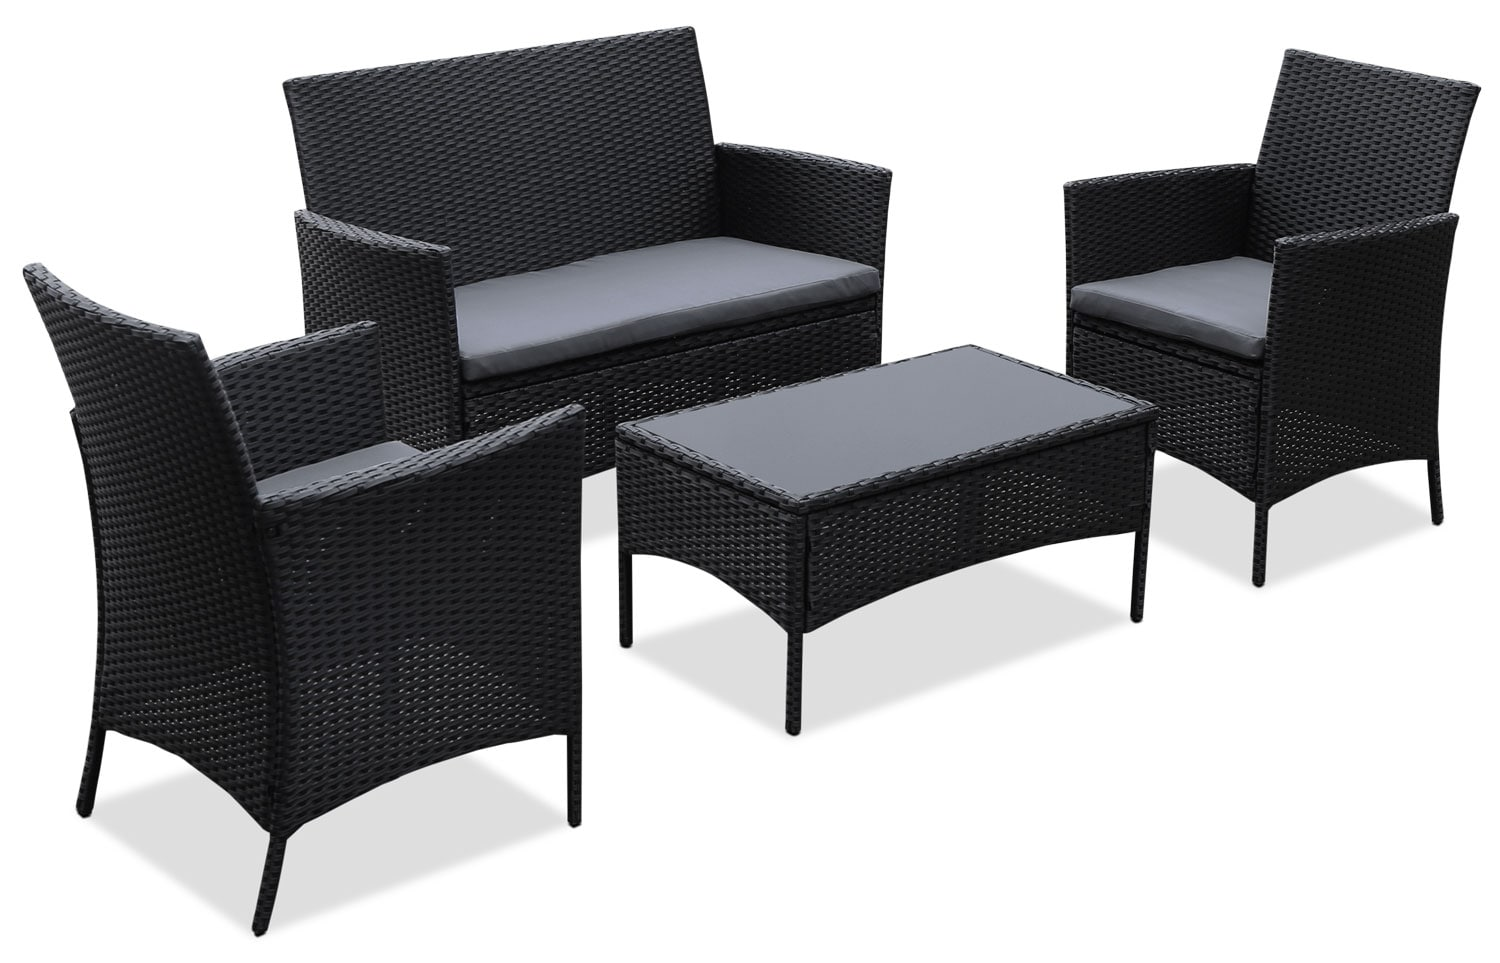 Trinidad 4-Piece Patio Conversation Set